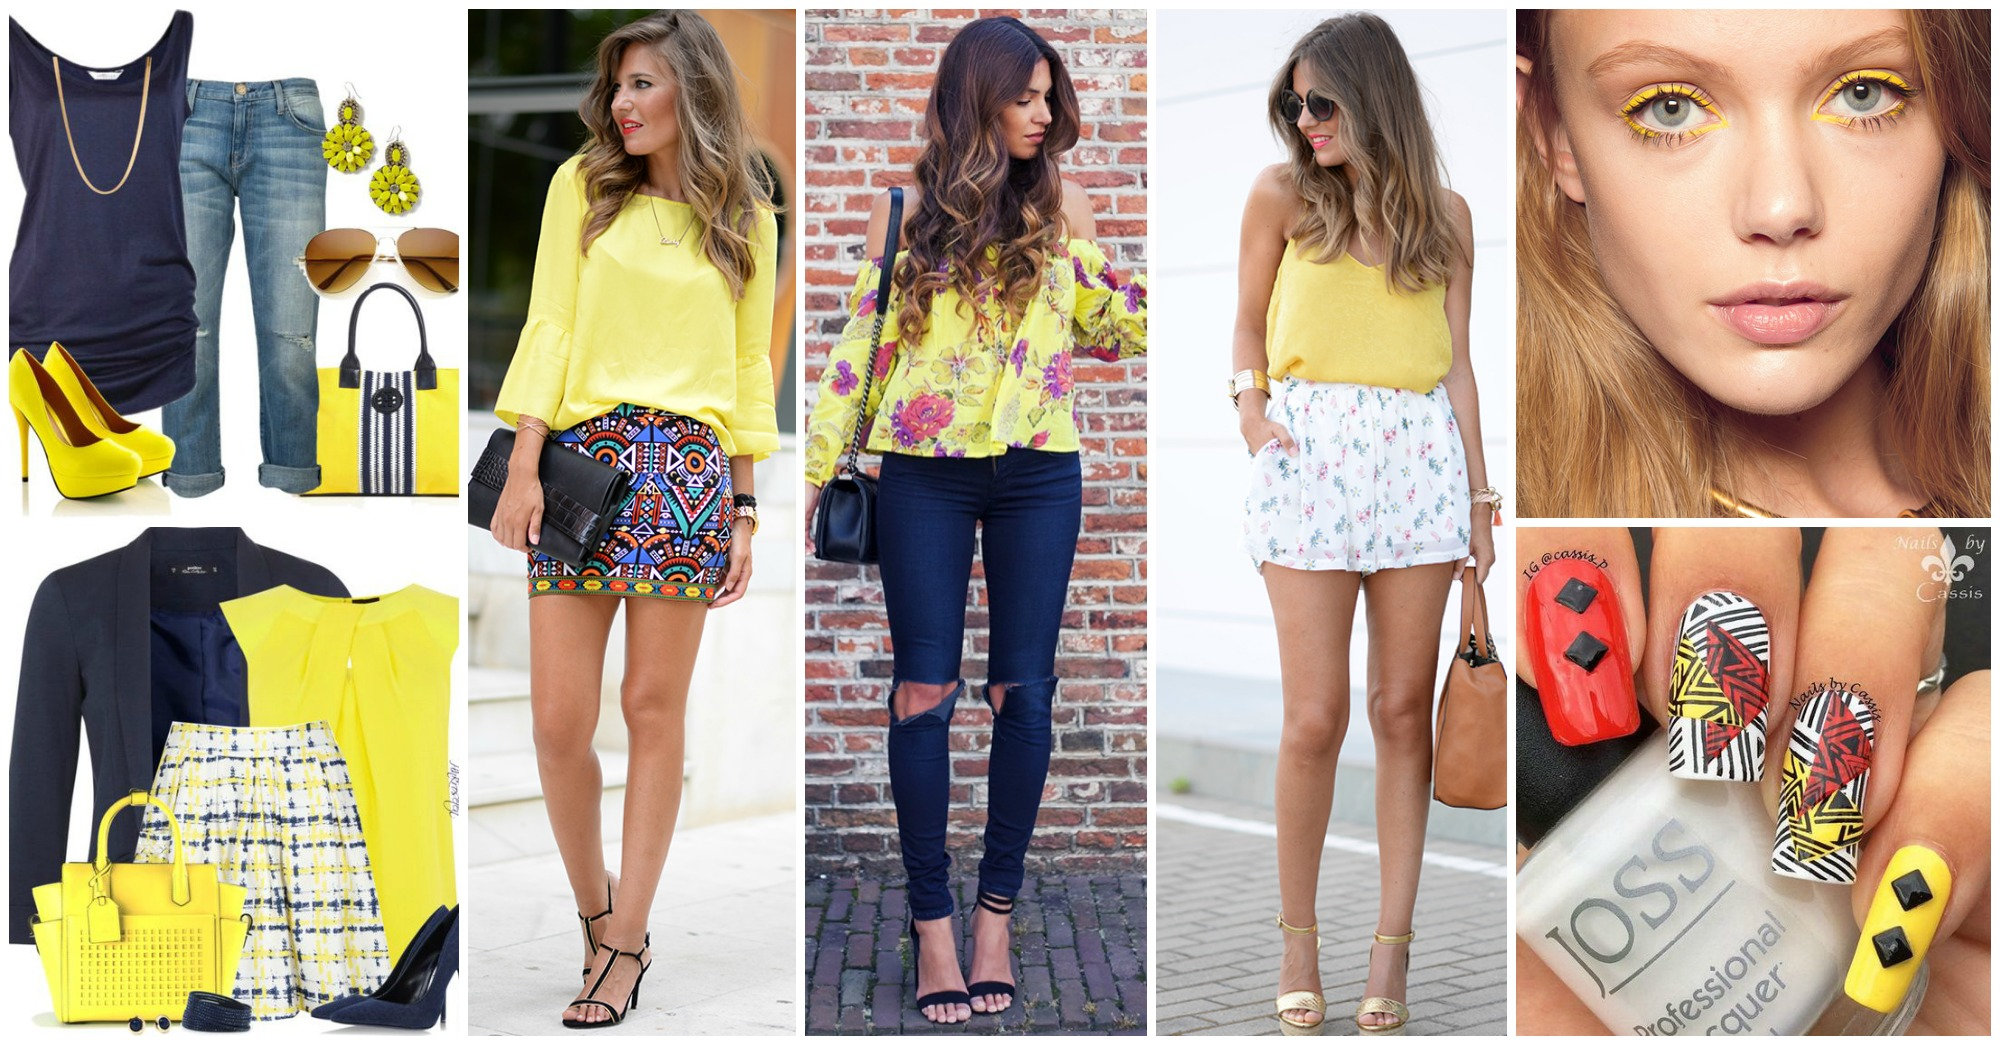 17 Chic Ways to Follow the Yellow Fashion Trend